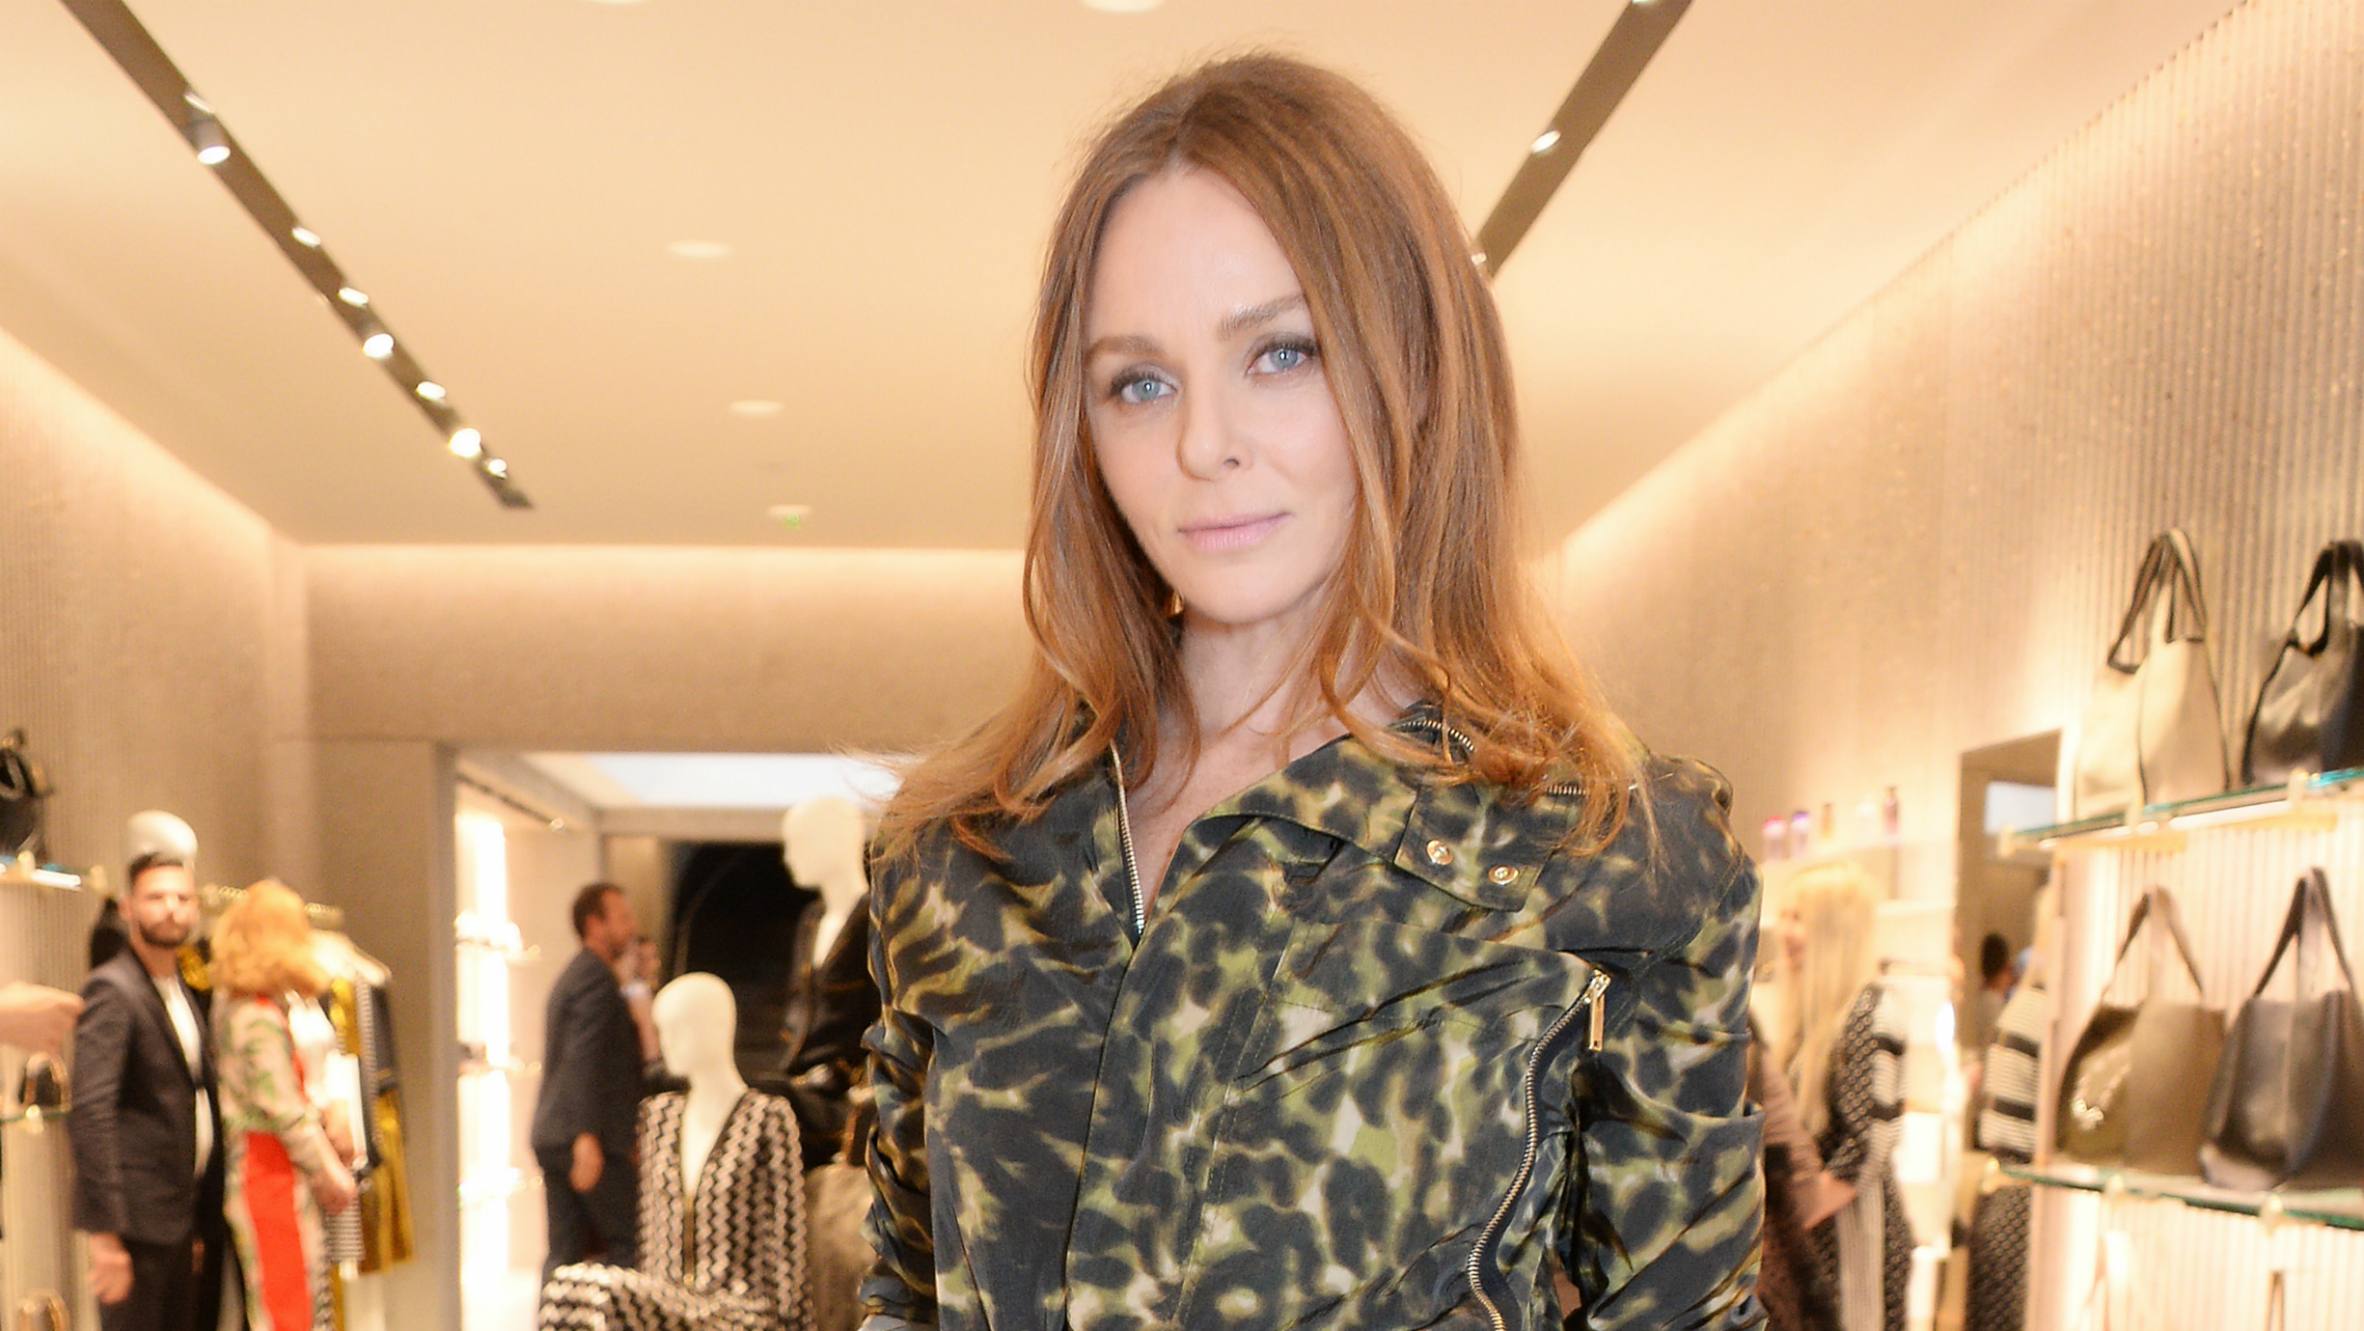 Stella Mccartney Designers Aren T Taking Responsibility For Environment